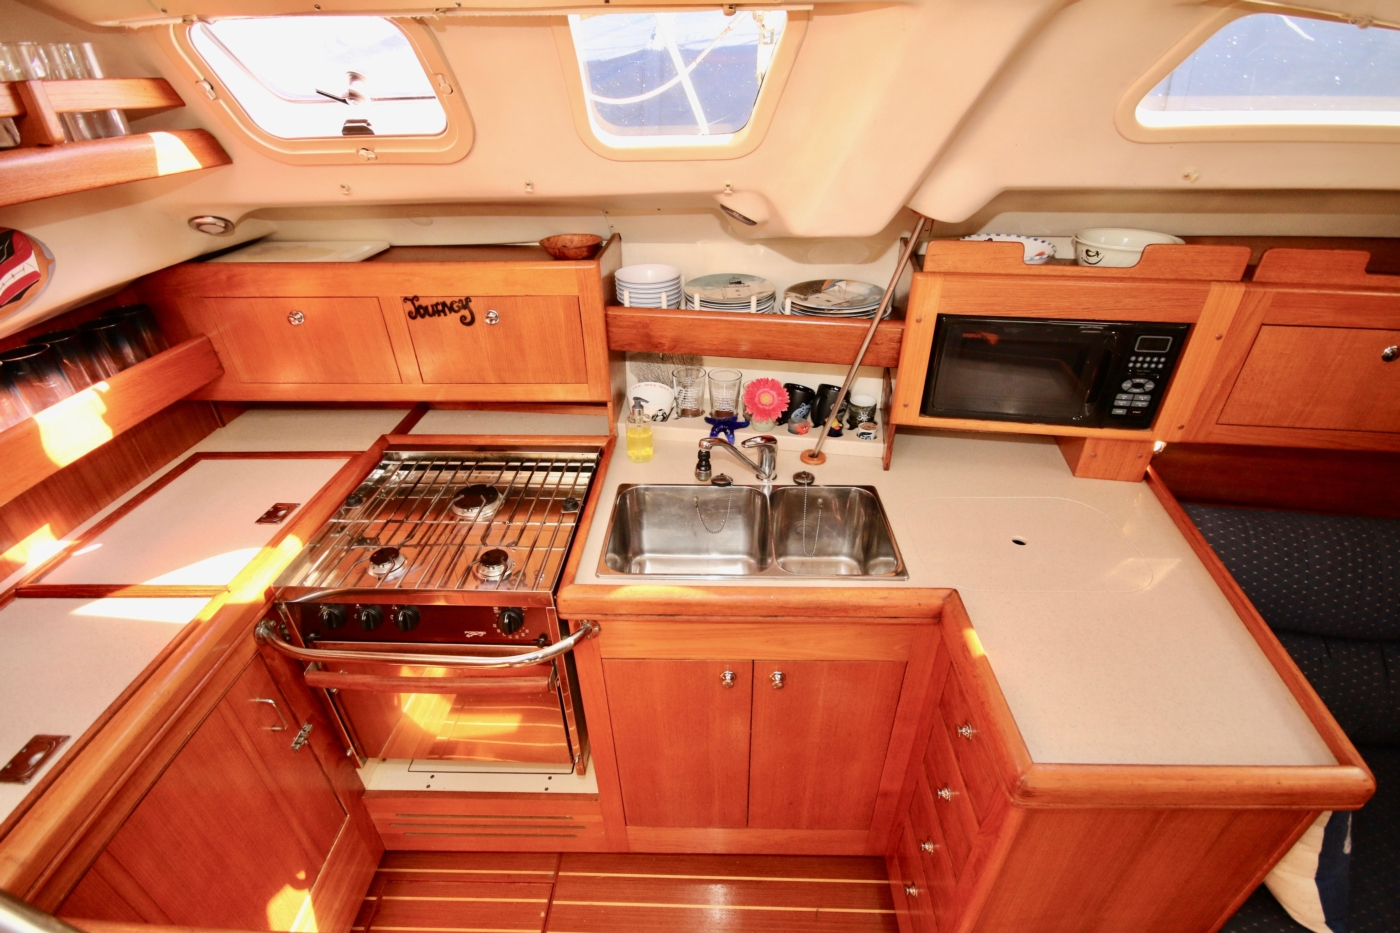 2004 Hunter Passage 420, The galley is a chef's delight